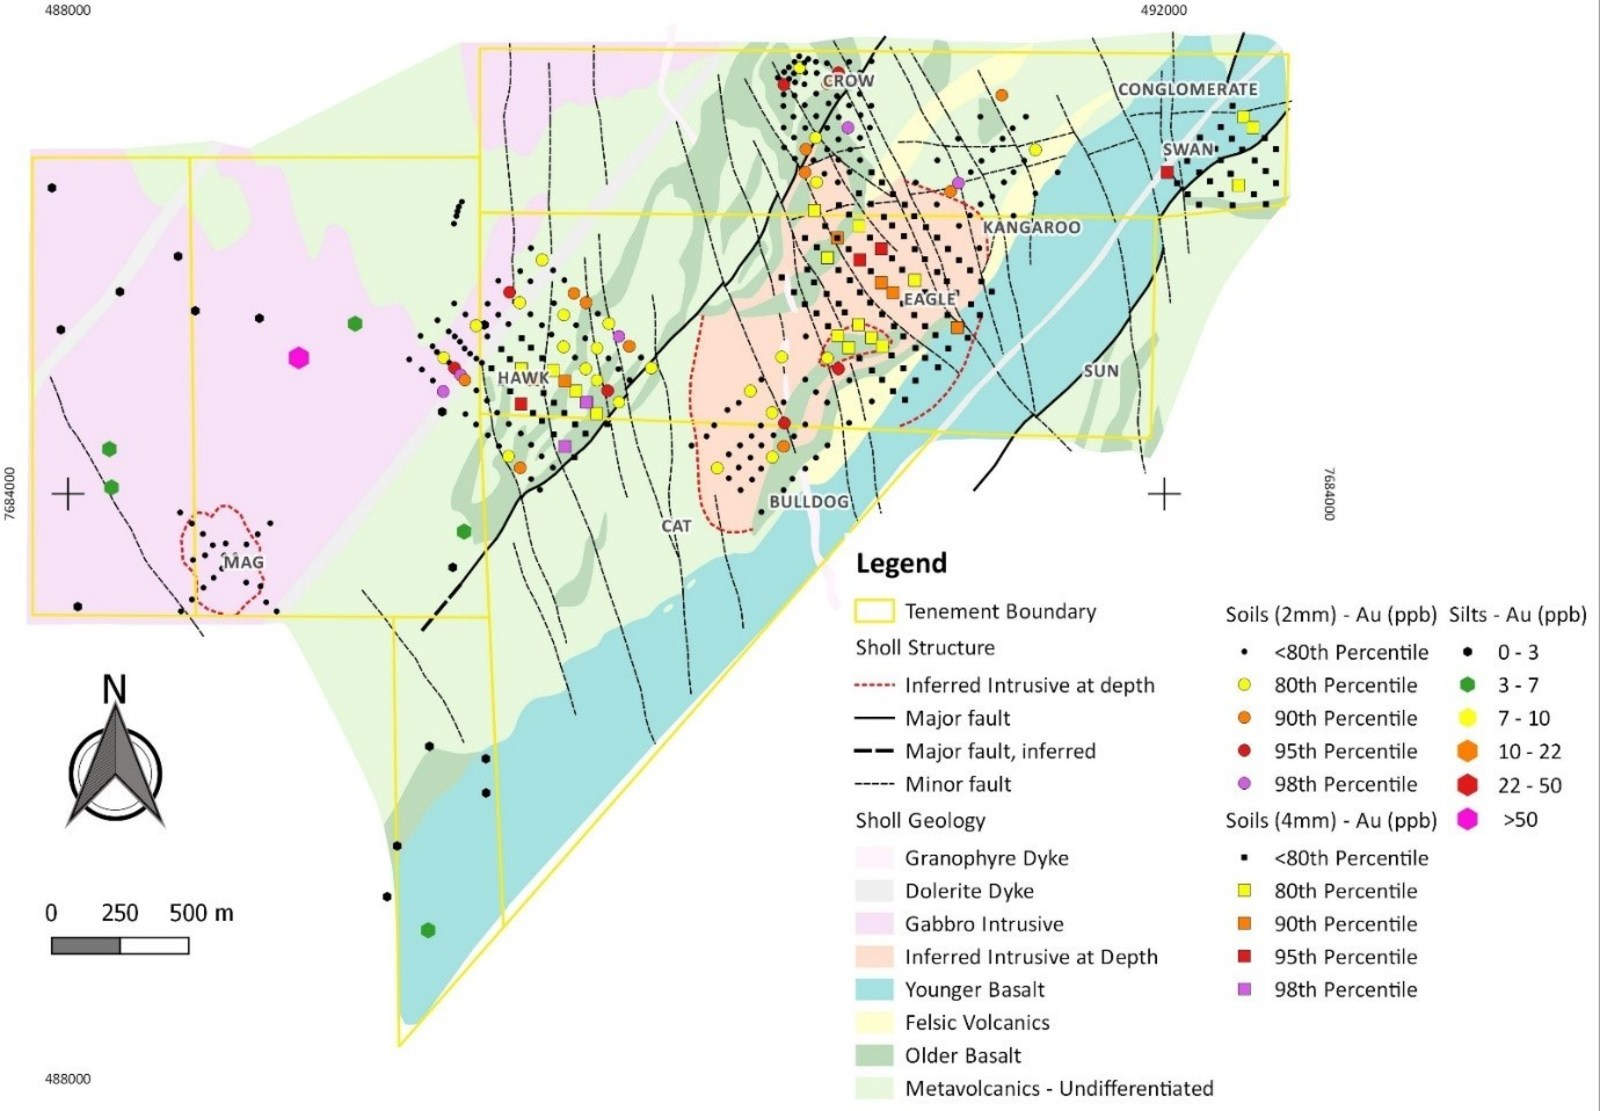 Figure 2: Sholl project area with silt and soil sampling.